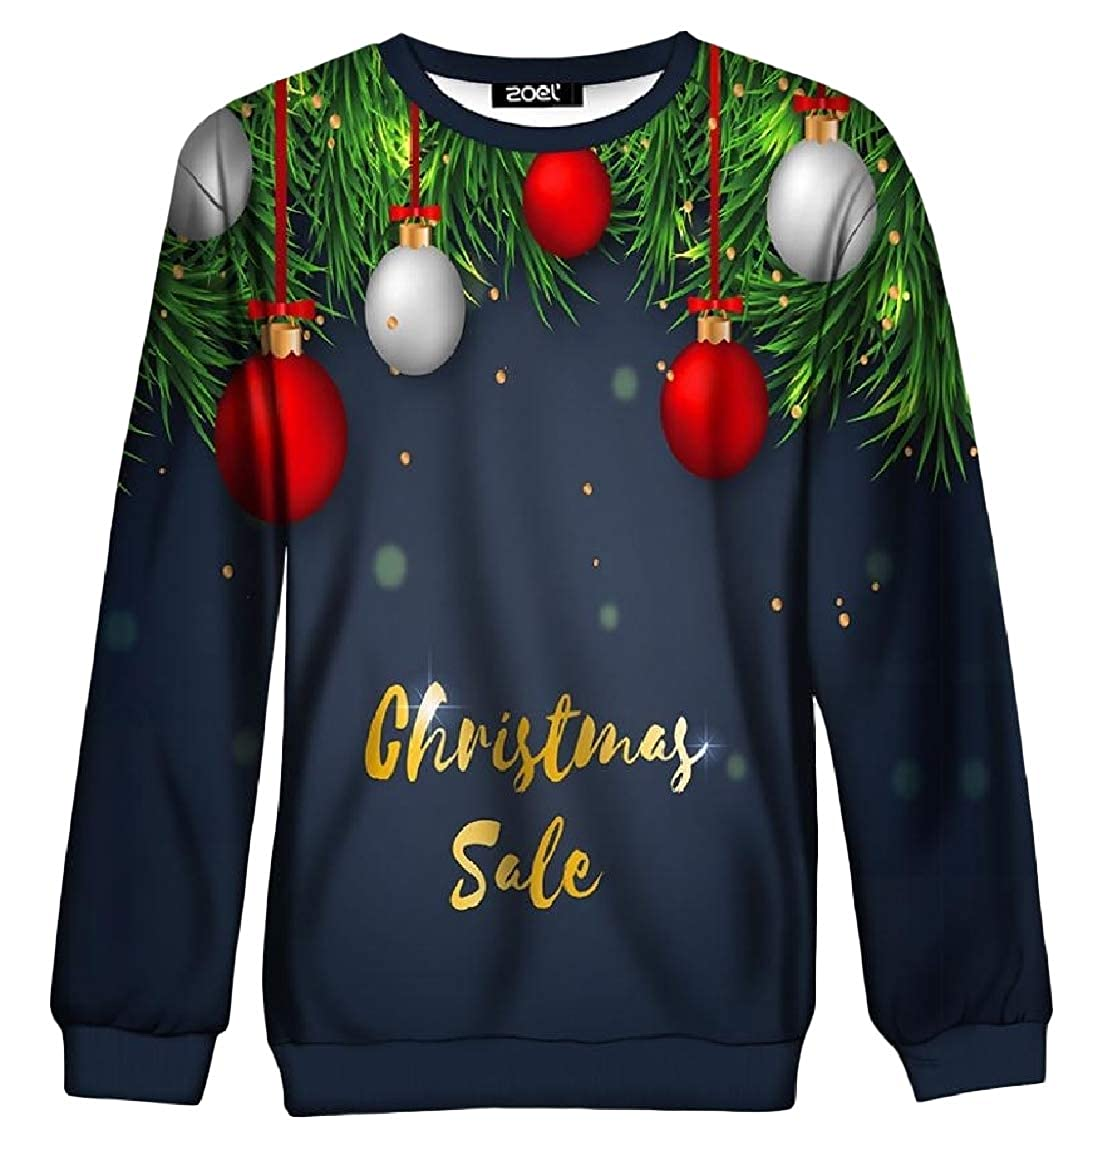 RingBong Womens Floral Print Casual O-Neck Long Sleeve Christmas Pullover Sweatshirt